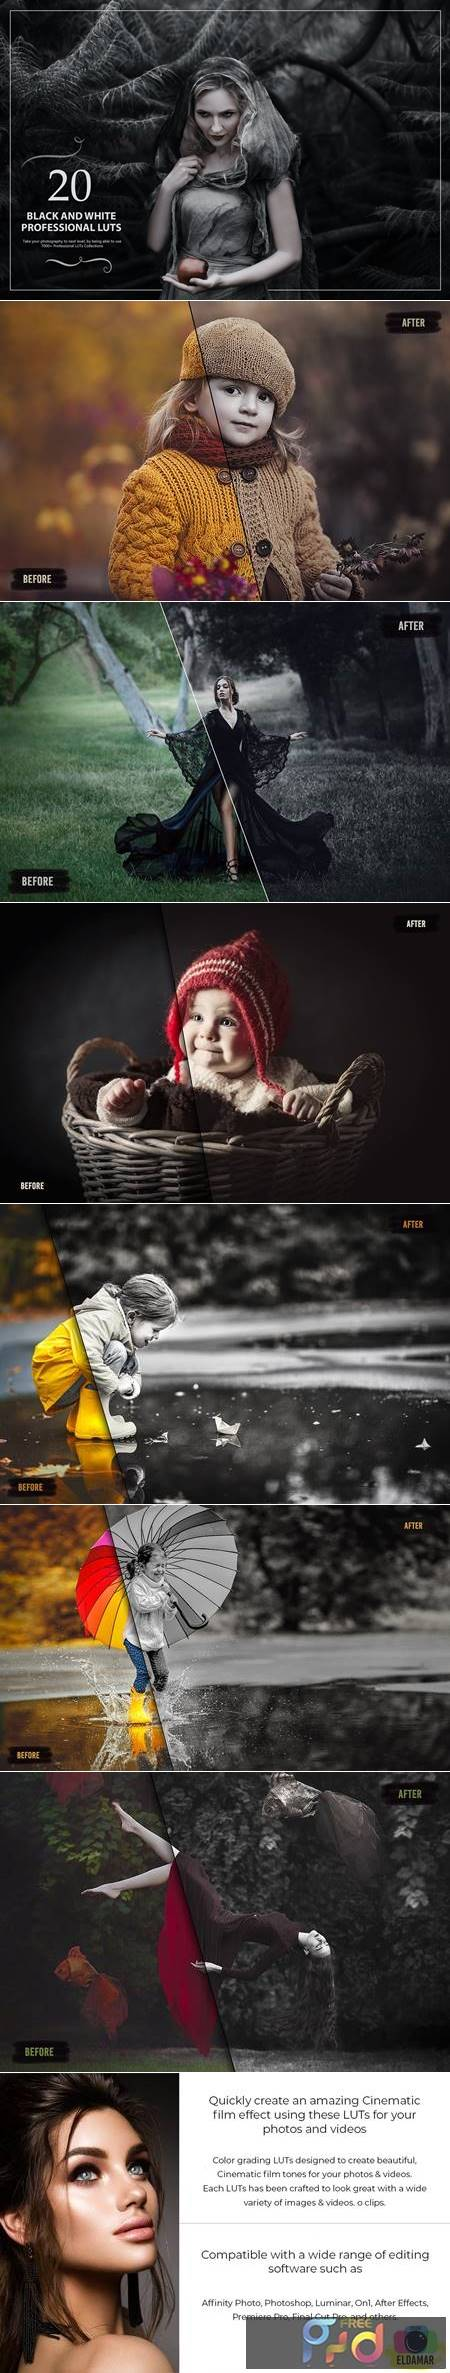 20 Black&White LUTs (Look Up Tables) 4UV7XH4 1